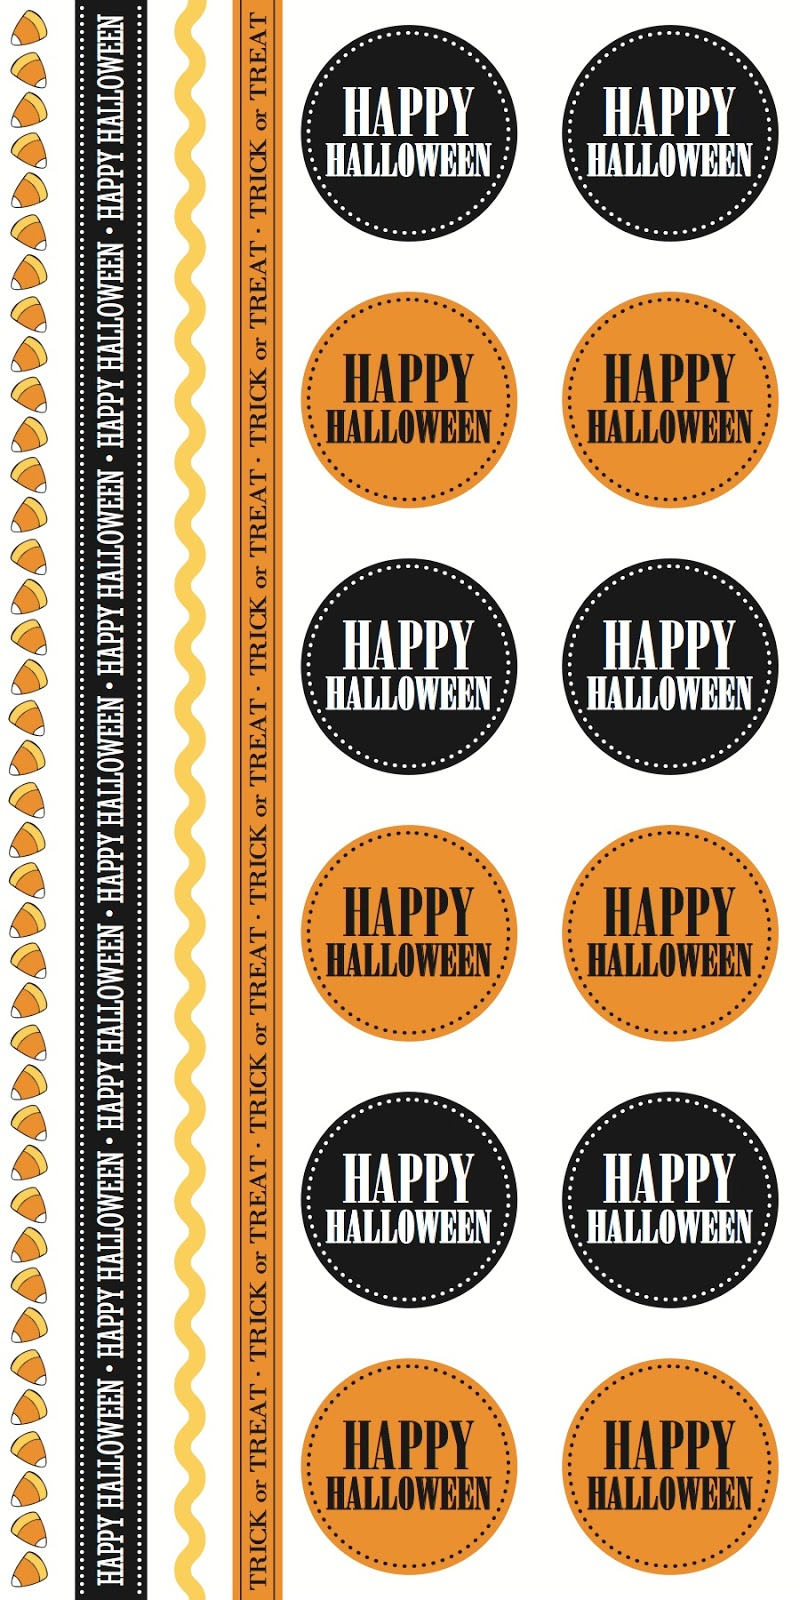 SRM Stickers BLog - New Product Reveal Stickers - #stickers #Take2 #Halloween